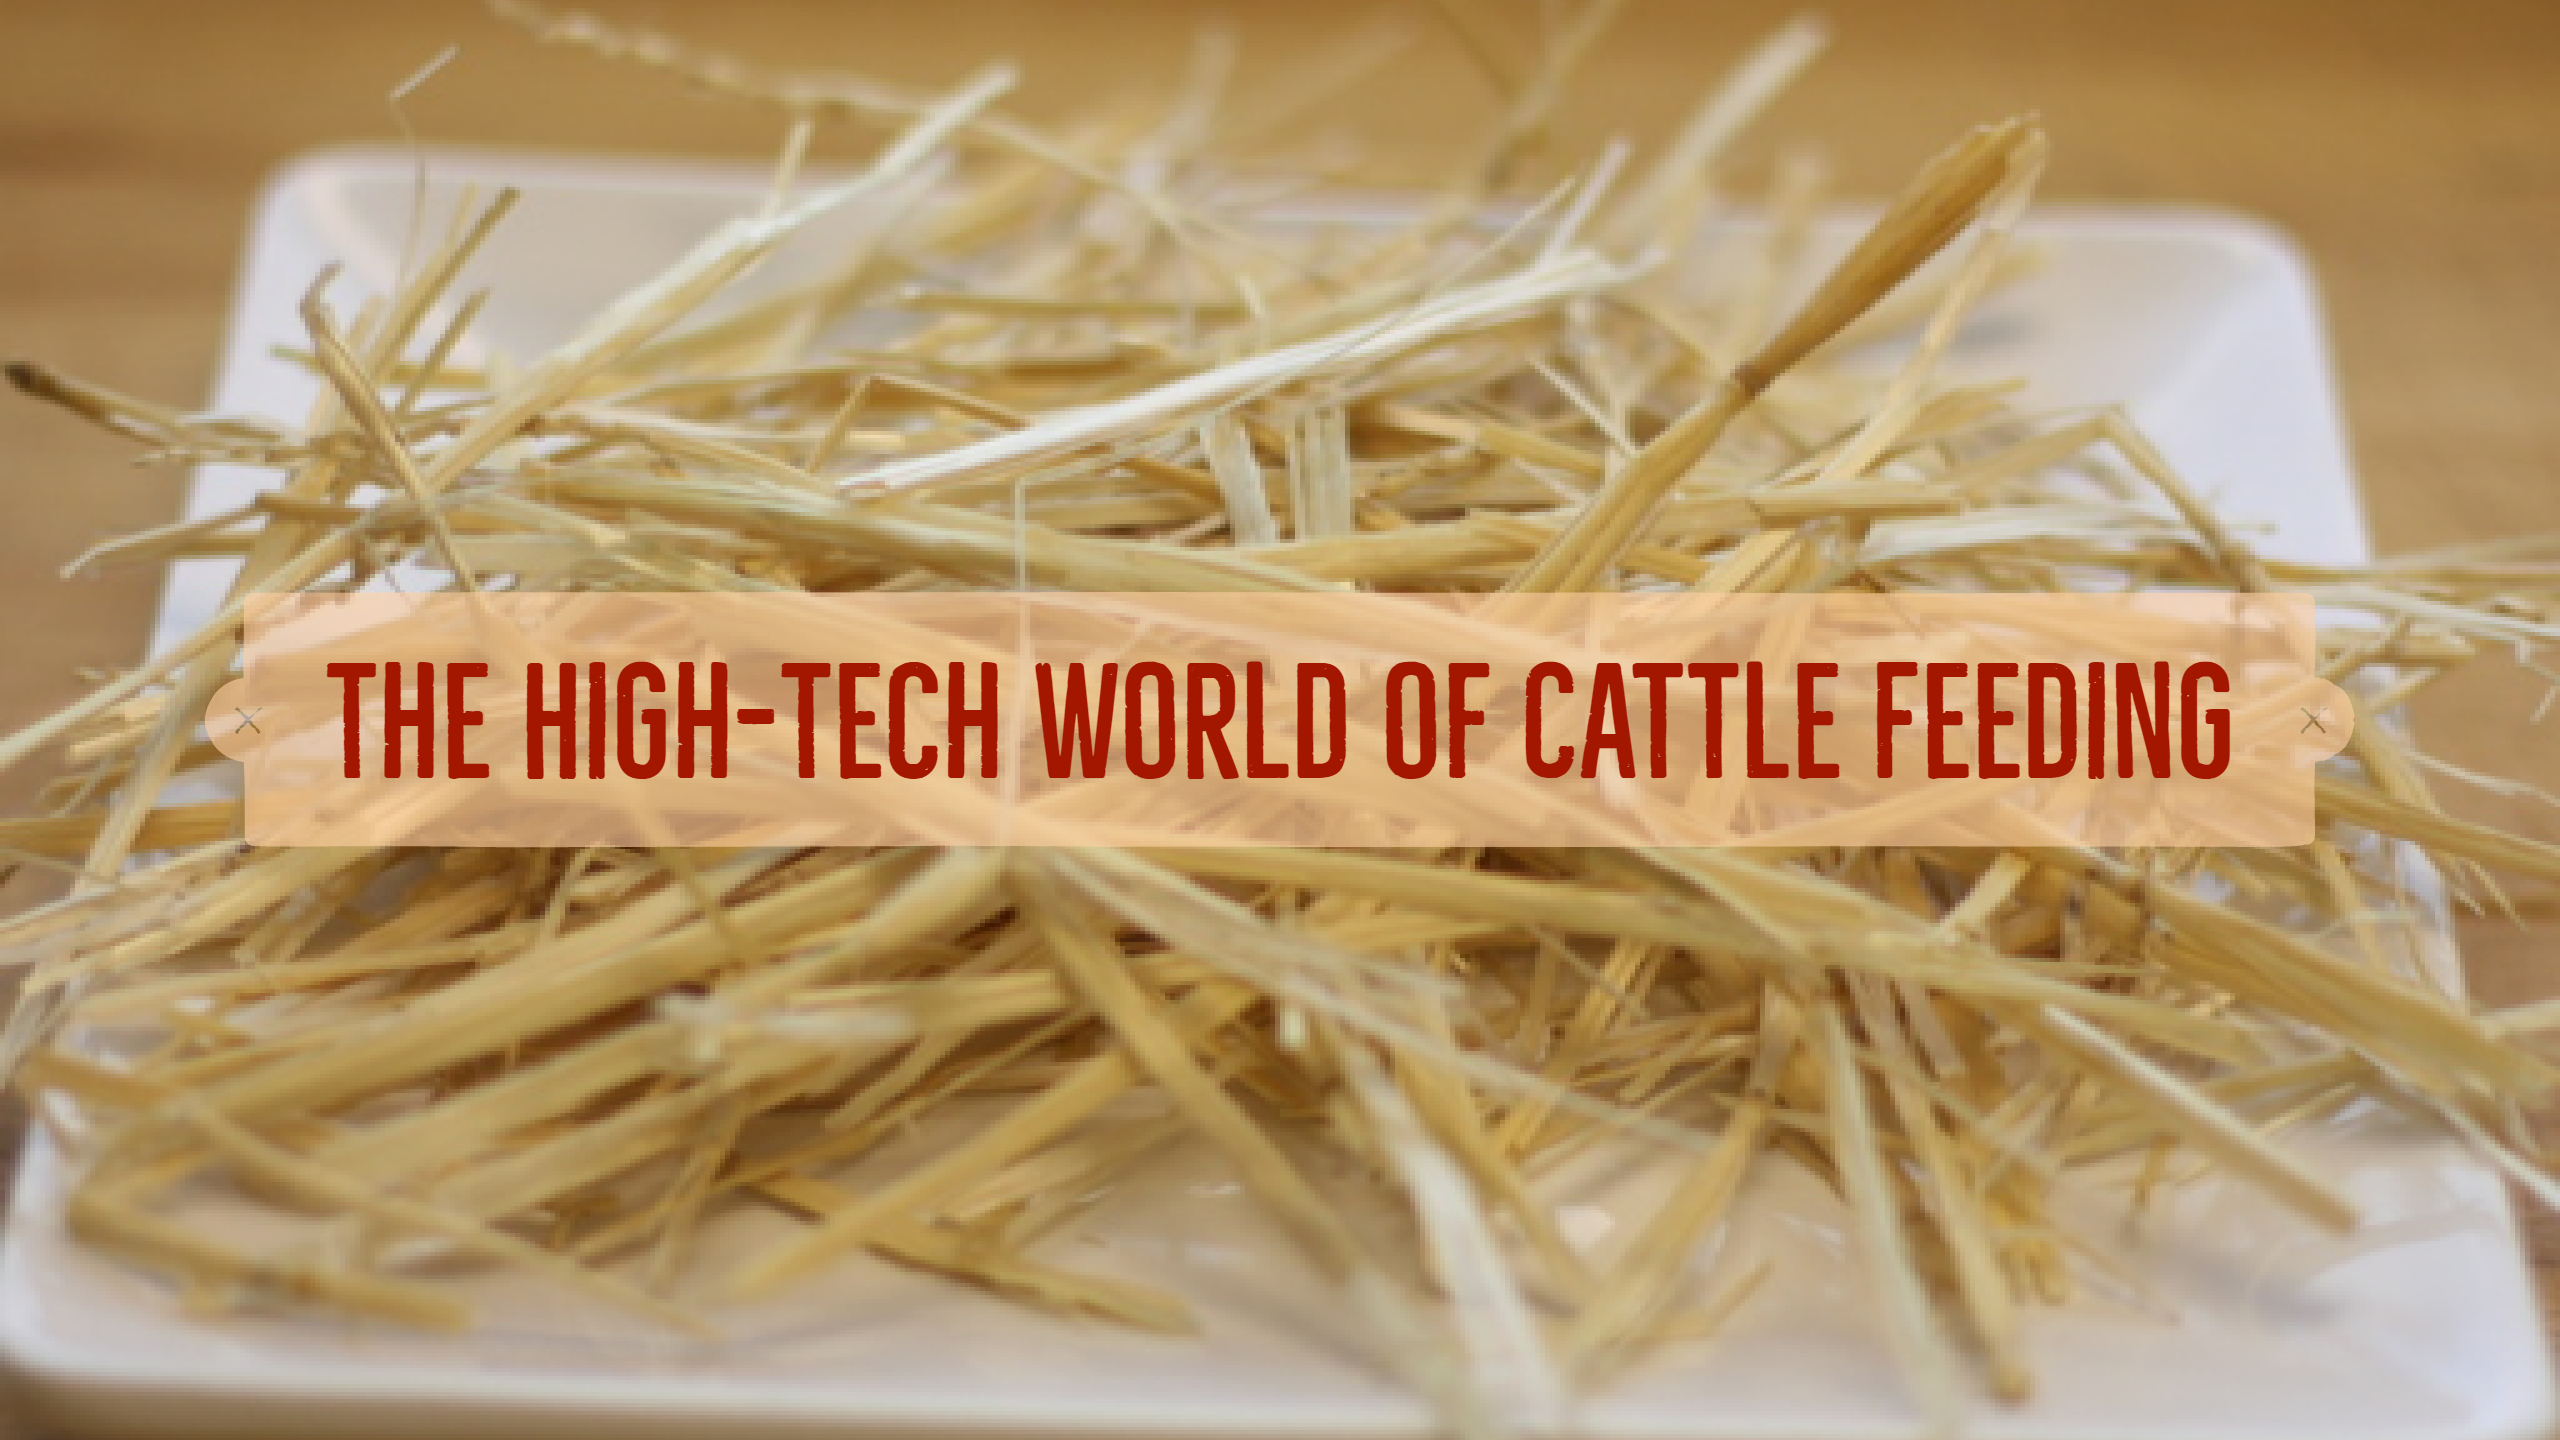 Improving Cattle Care Through Technology